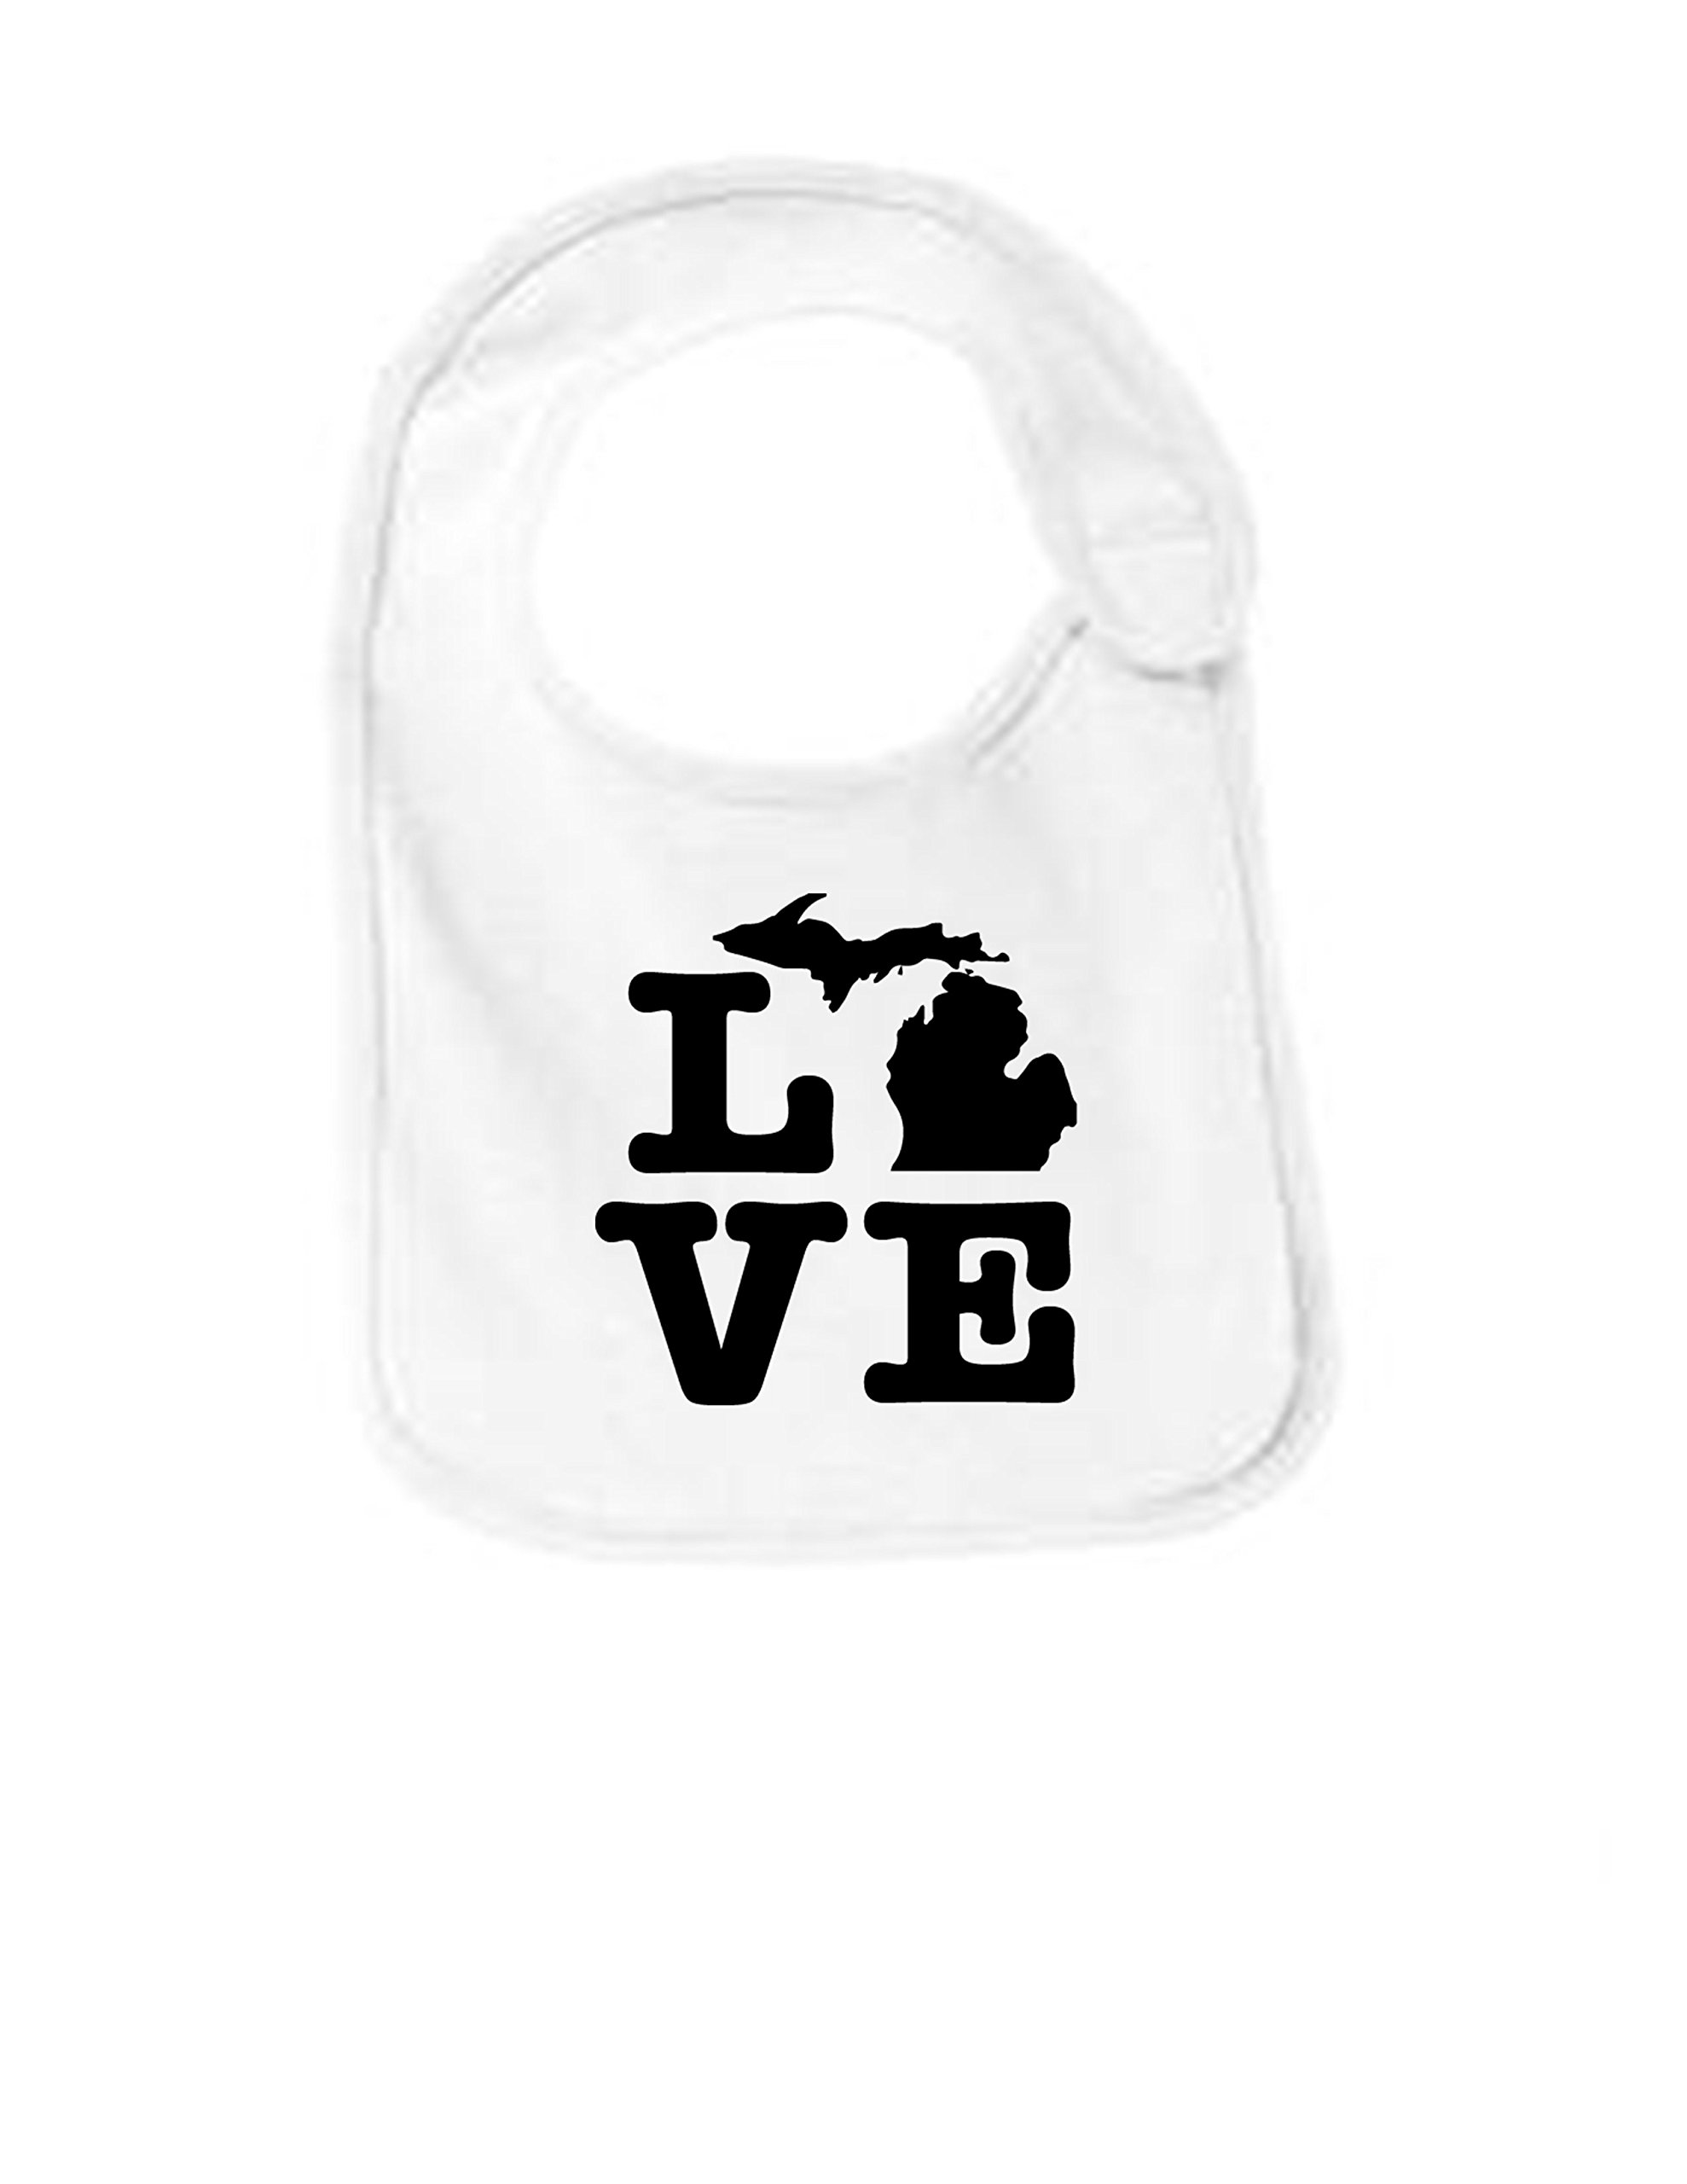 Michigan Love Funny Infant Jersey Bib White One Size by Sod Uniforms (Image #1)